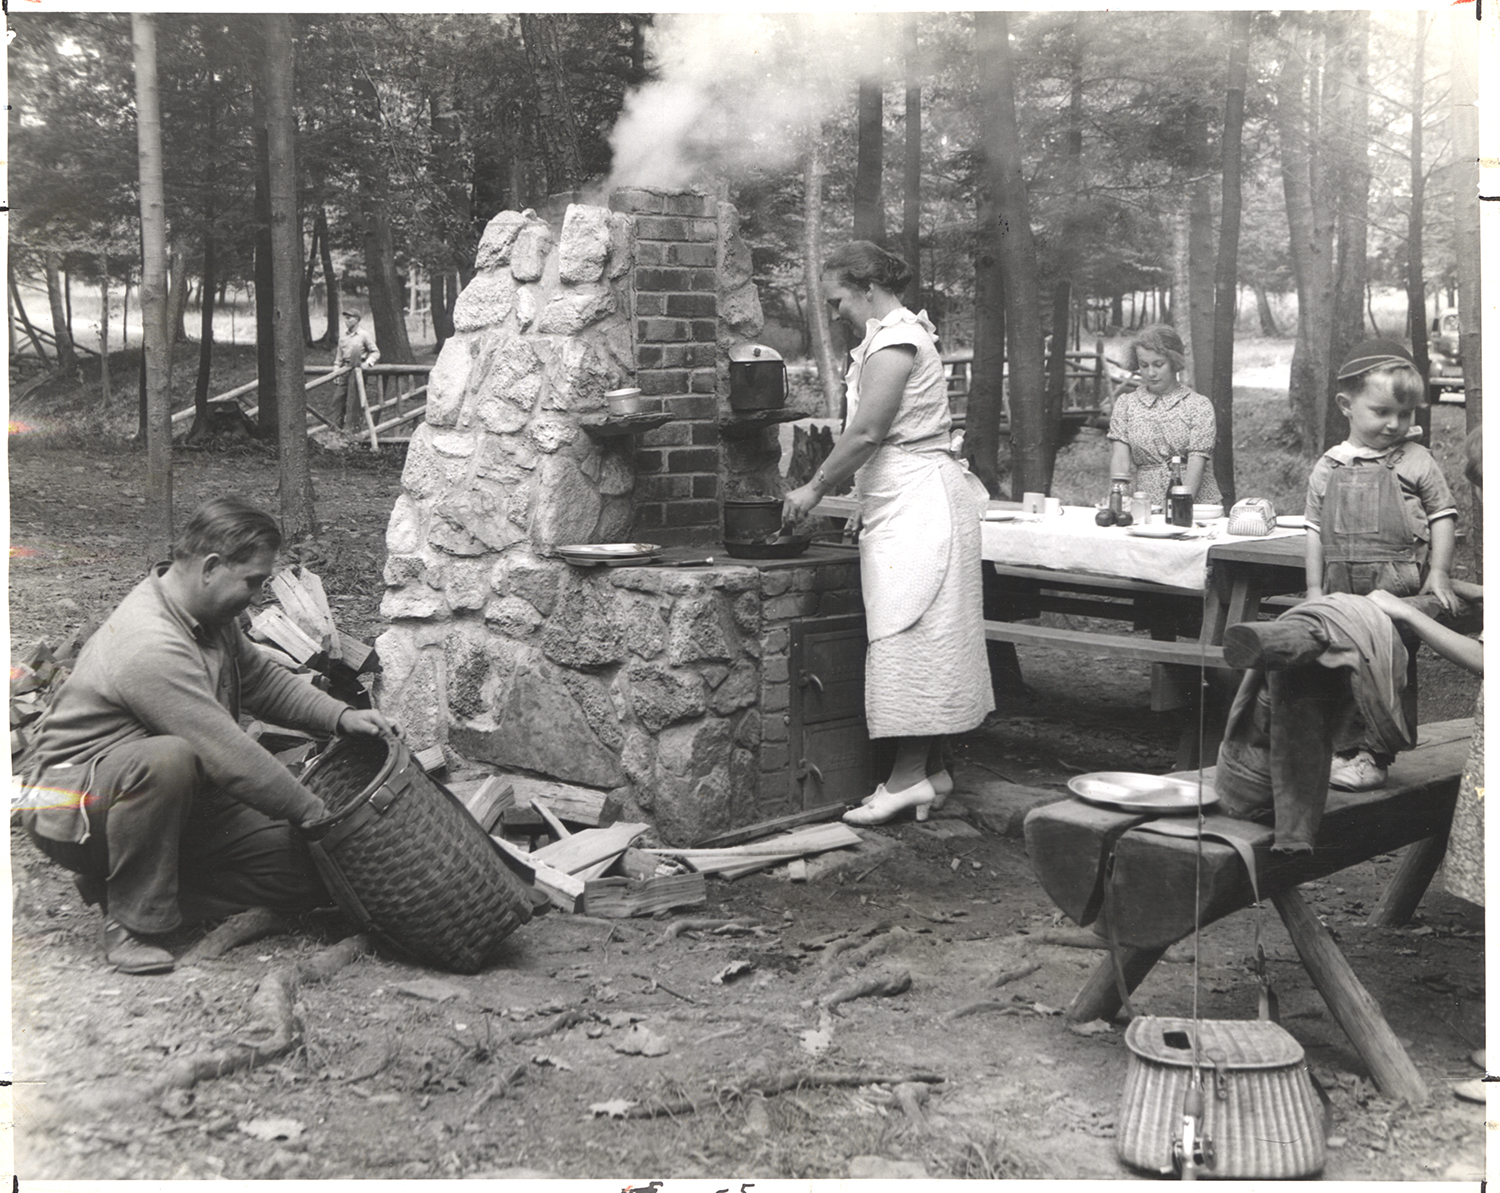 Frying up the day's catch at Cook Forest State Park, 1940s. Allegheny Conference on Community Development collection, MSP 285, Detre Library & Archives, Heinz History Center.